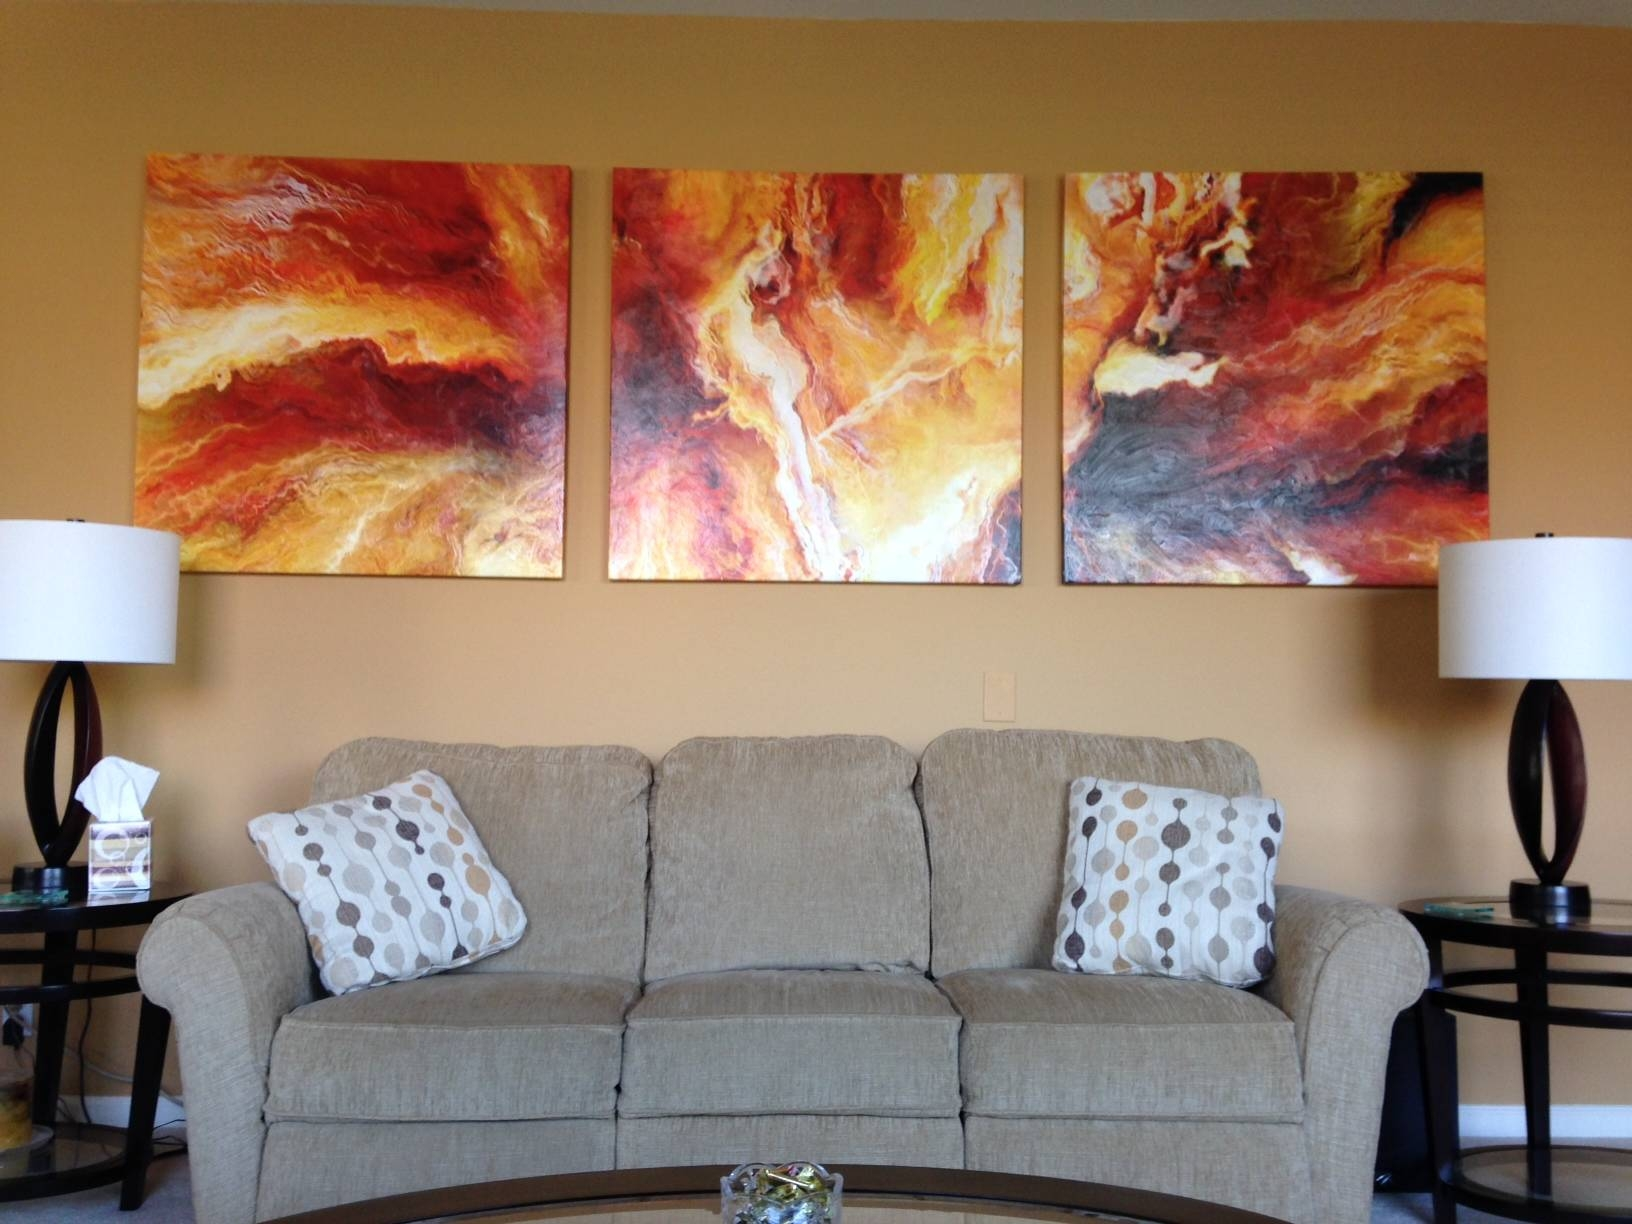 Large Abstract Art Archives – Cianelli Studios Art Blog Throughout Most Recent Large Triptych Wall Art (View 15 of 20)